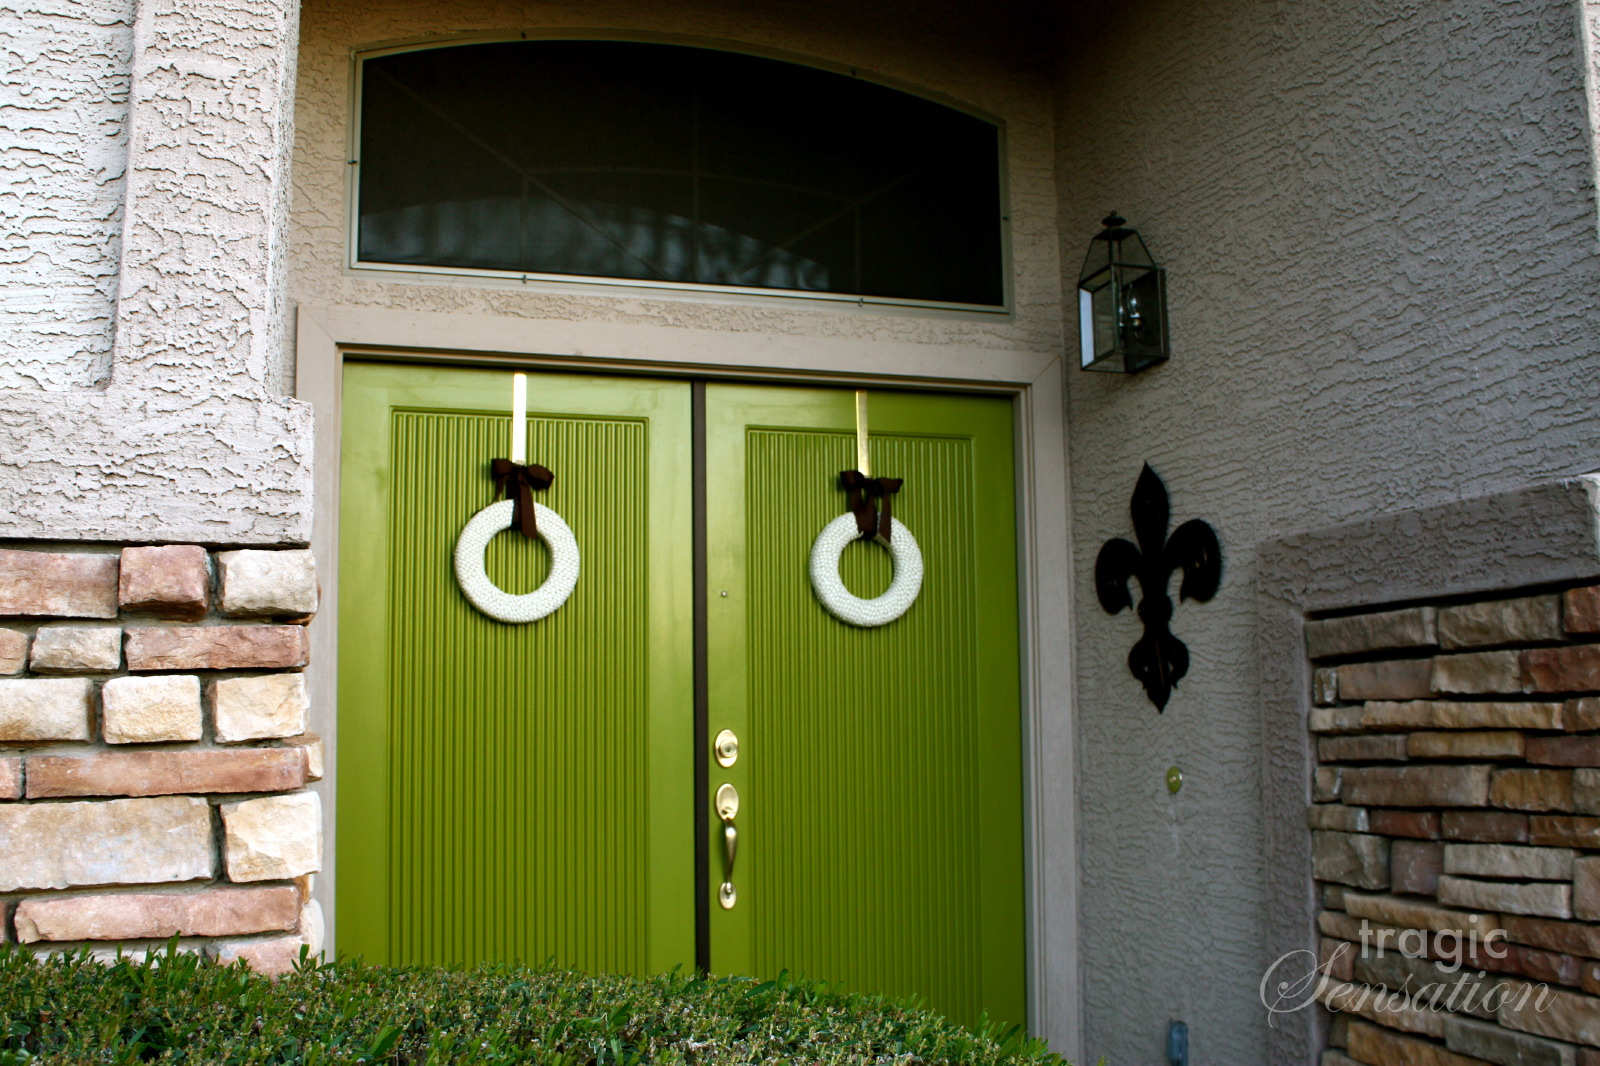 1066 #495E0F Tragic Sensation: Behind The Green Doors picture/photo Different Color Front Doors 47091600